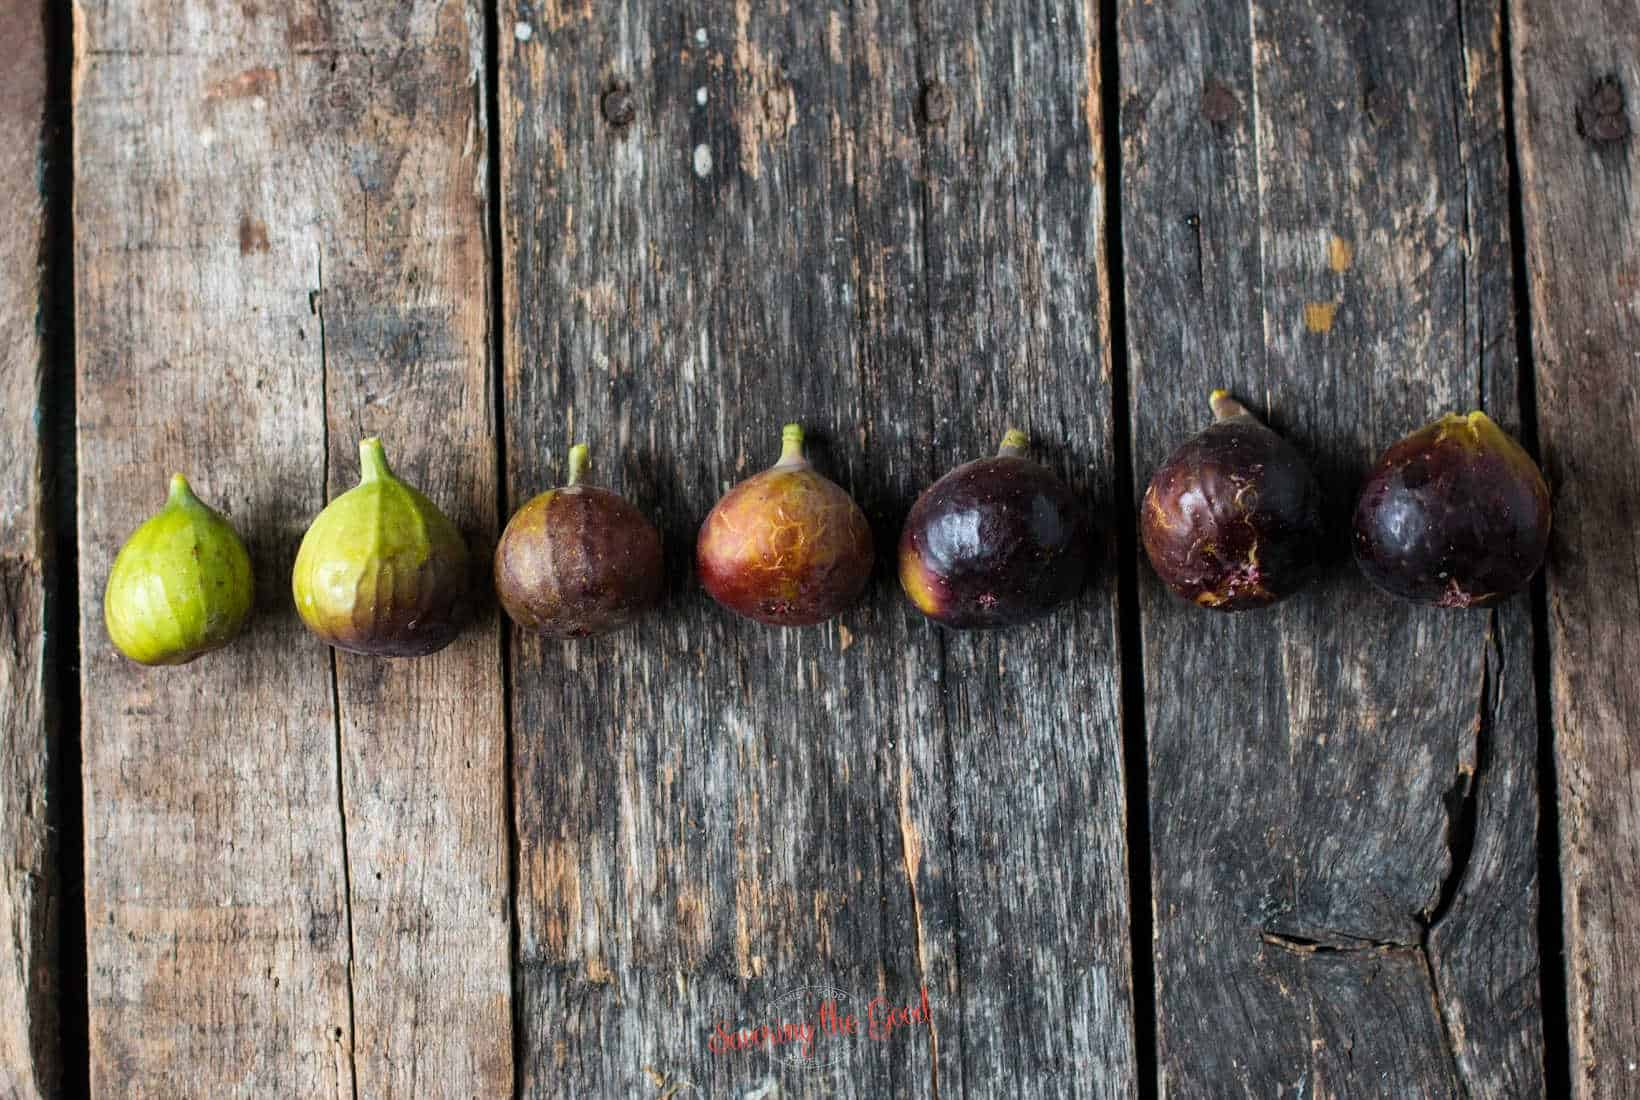 7 figs in a row showing progression of ripeness